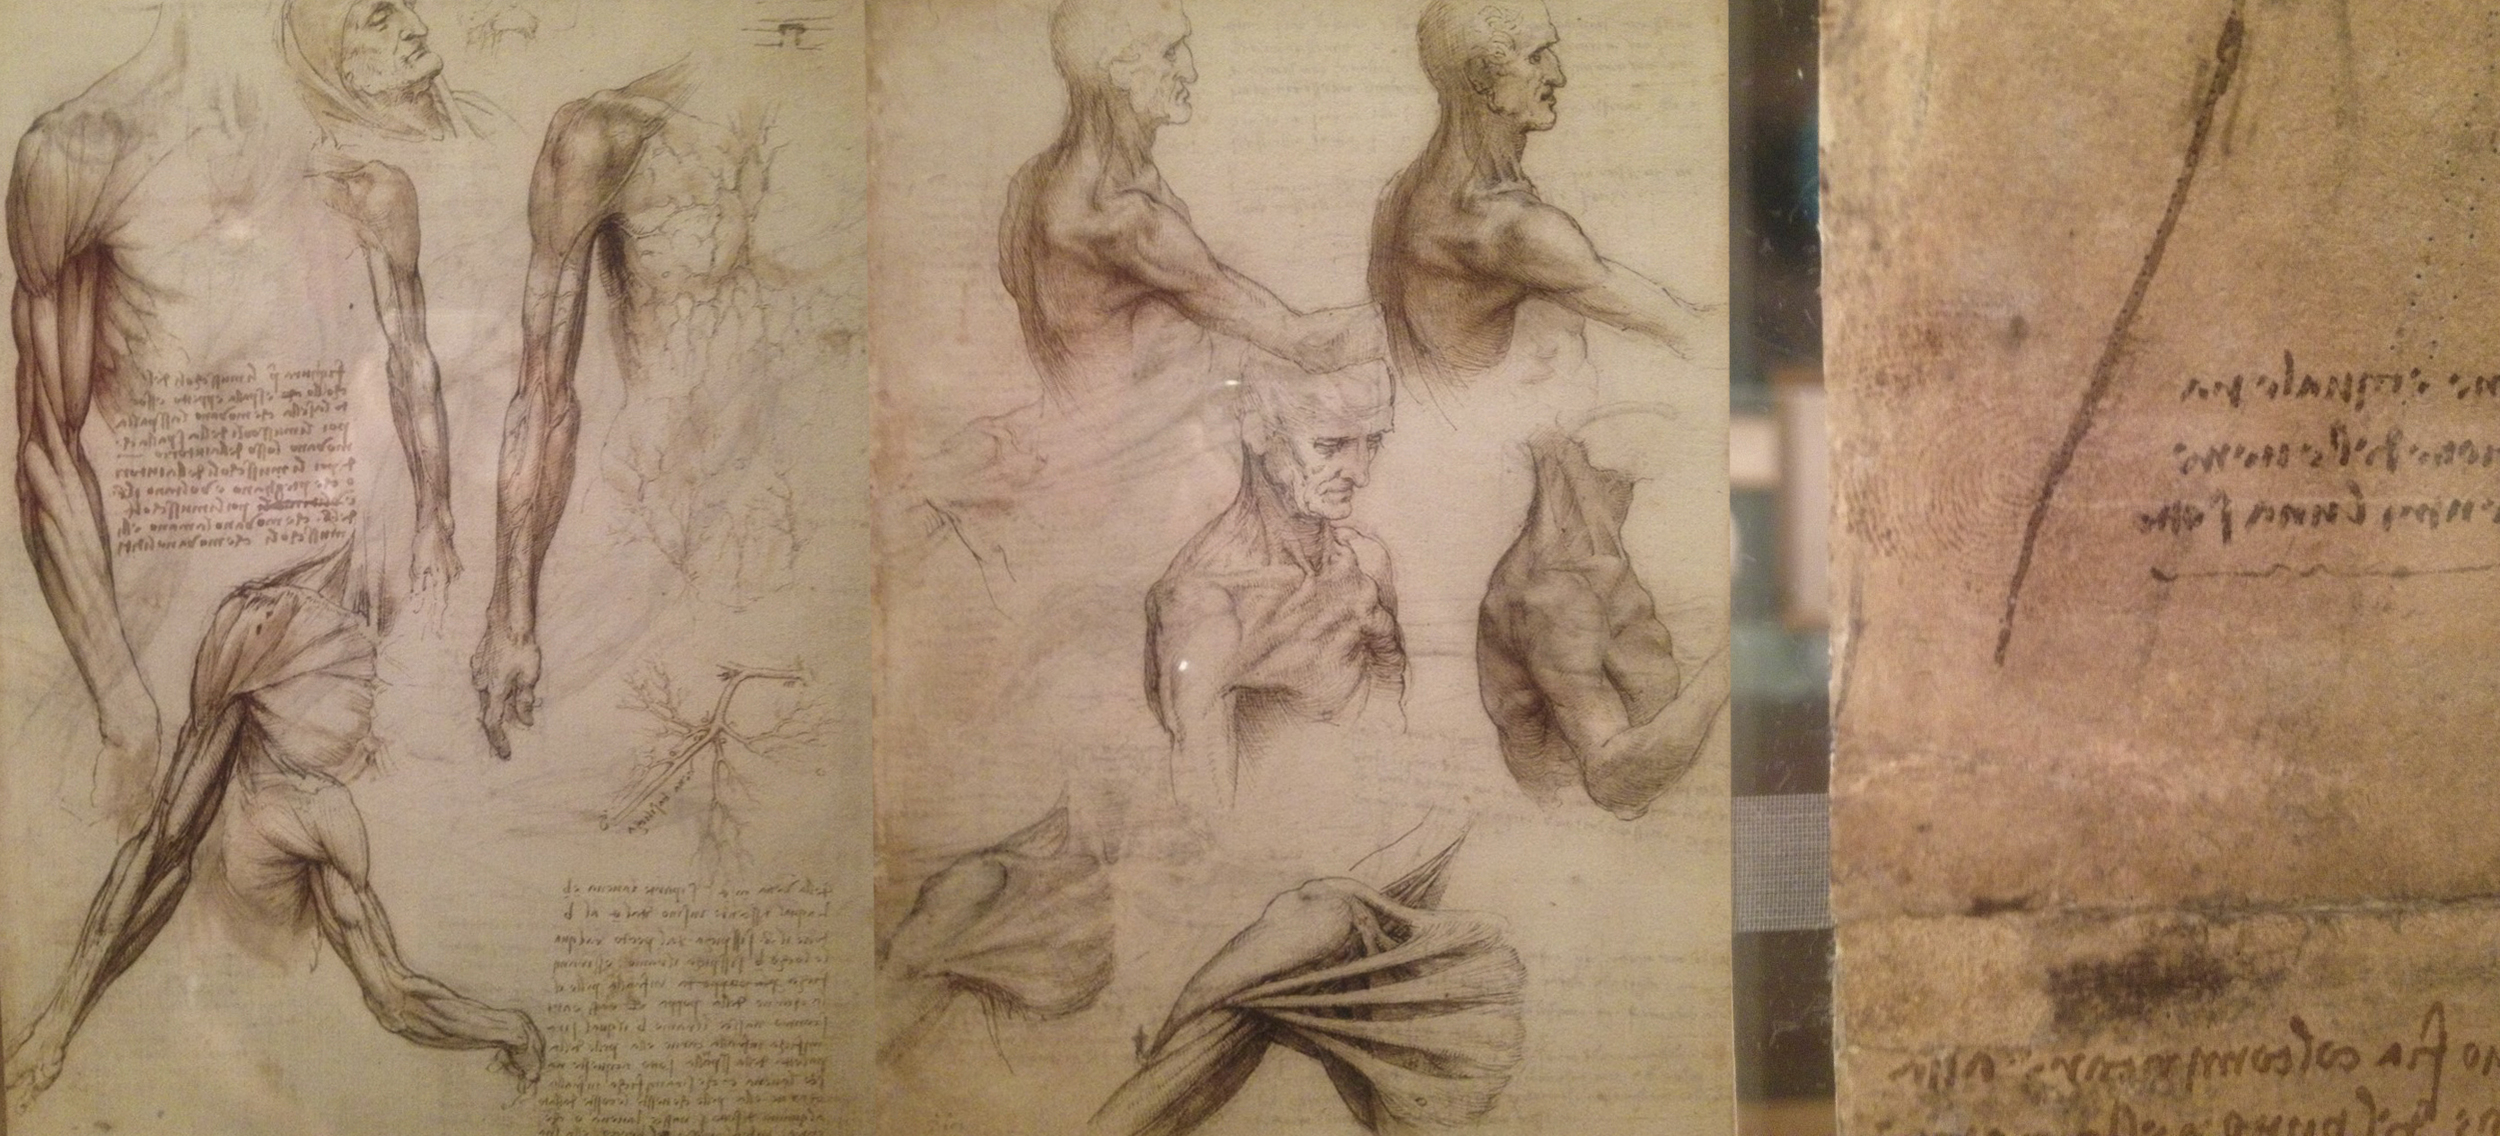 Da Vinci's sketches of the human form, on the right of the image you can see Da Vinci's fingerprint along with the the pin-pricks used to make copies of his drawings (click image to enlarge)